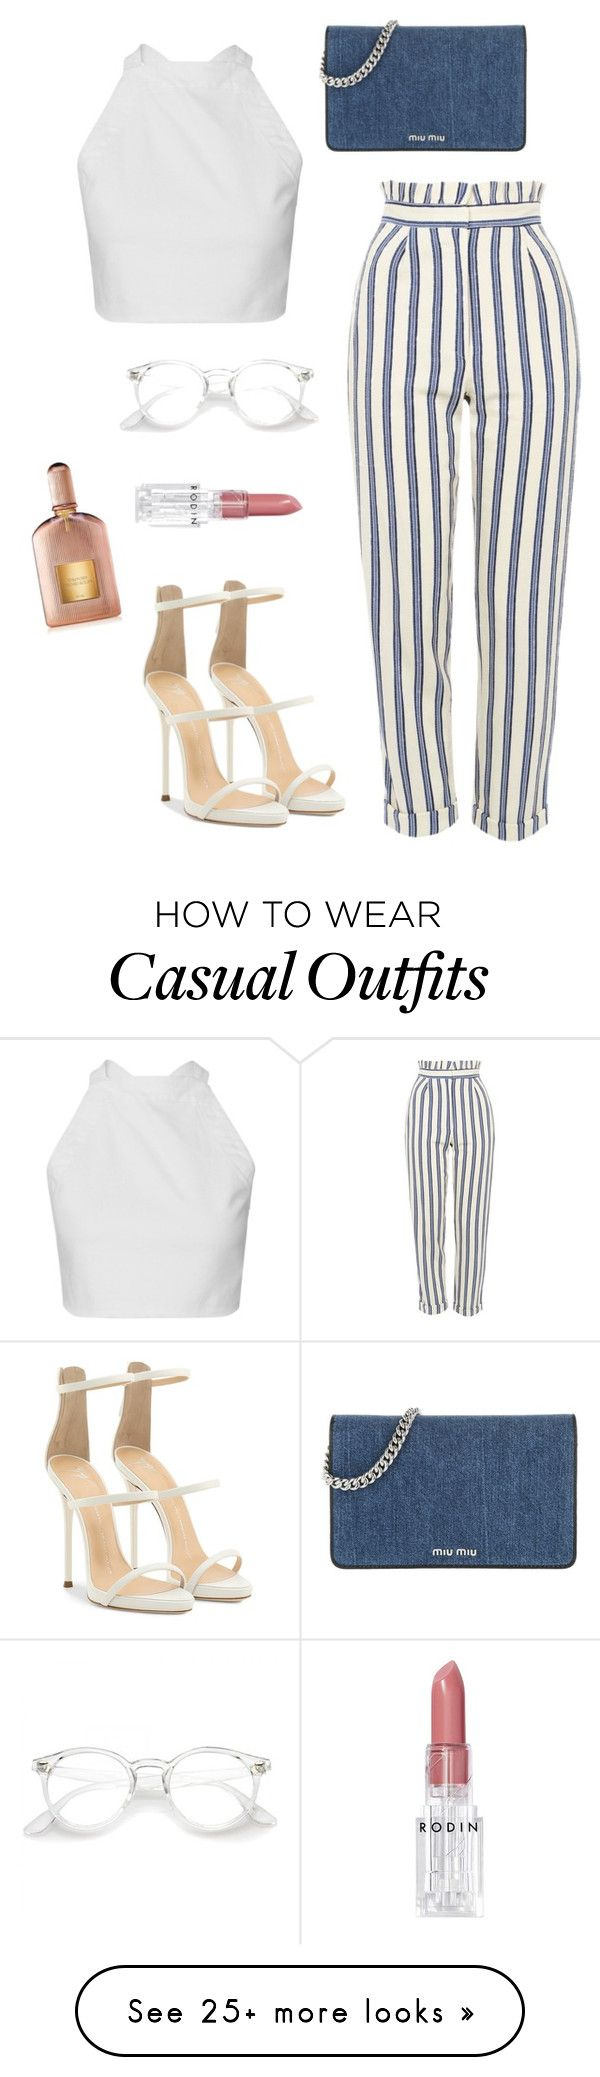 """casual day"" by alxxandria on Polyvore featuring Topshop, Miu Miu, Giuseppe Zanotti, Tom Ford and Rodin"